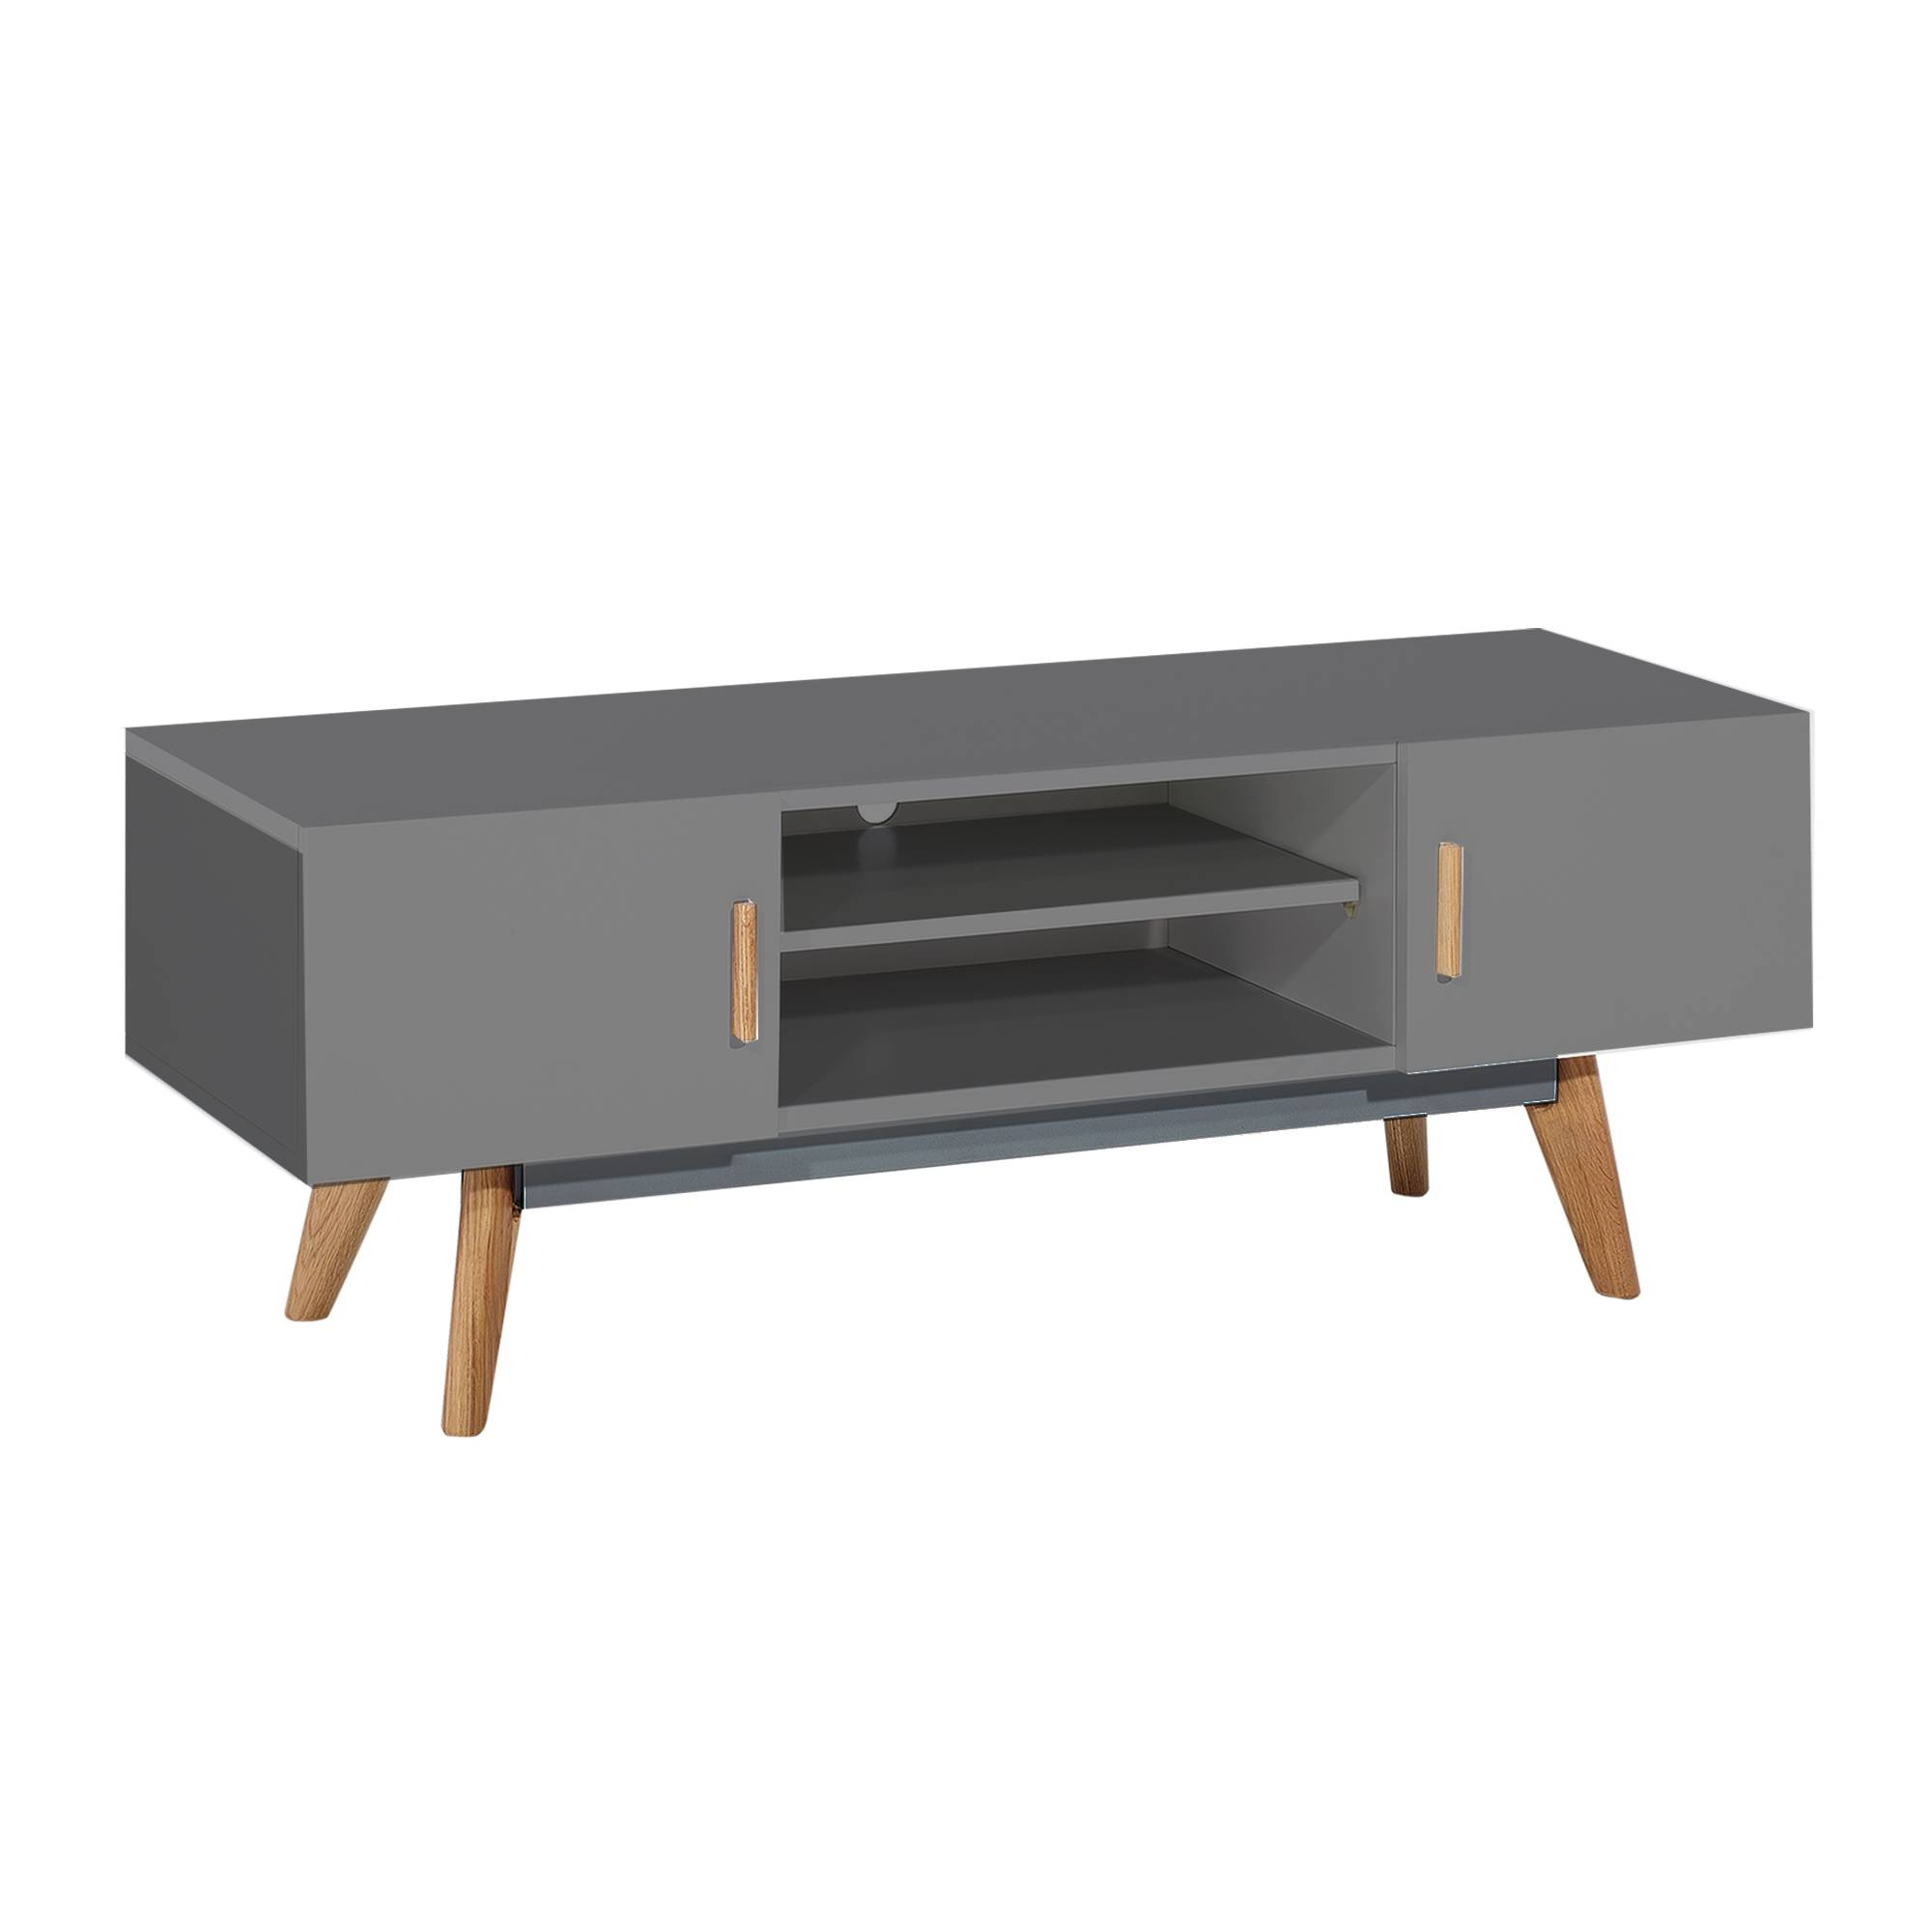 Stylish White Modern Tv Stand From Abreo Abreo Home Furniture throughout Grey Tv Stands (Image 12 of 15)